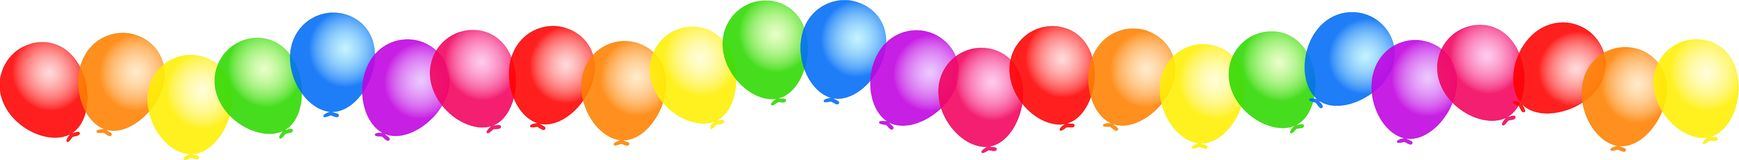 Balloon Border Illustration 99688.